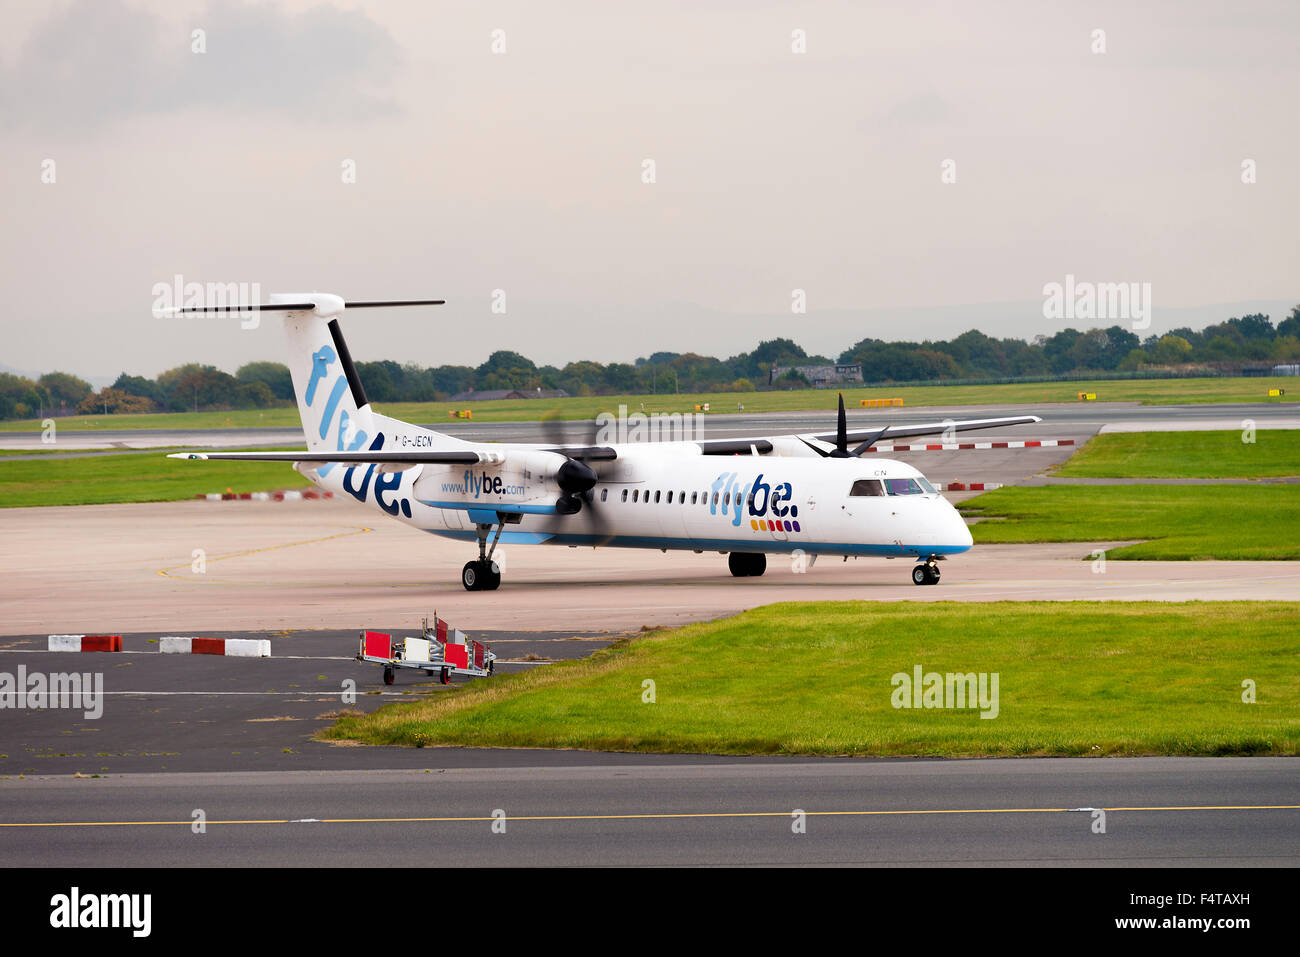 Flybe Airlines Bombardier Dash8-402Q Turboprop Airliner G-JECN Taxiing at Manchester Airport England United Kingdom - Stock Image